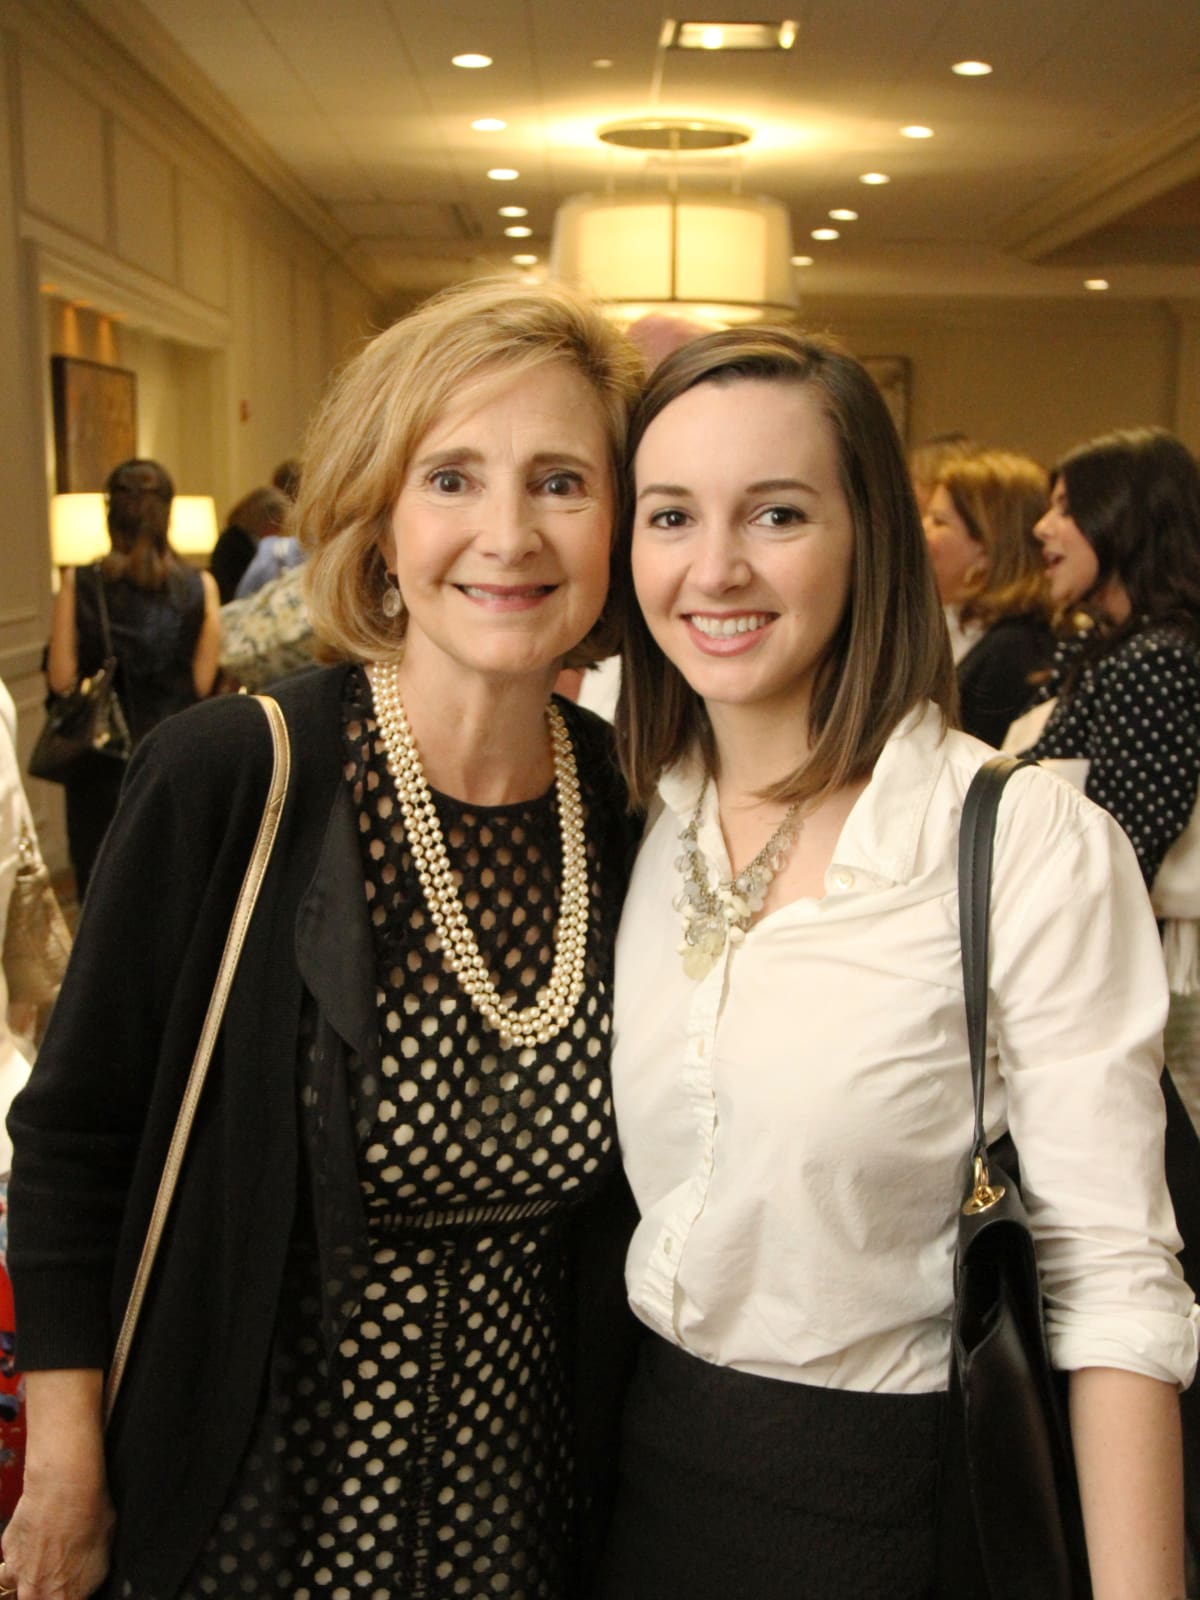 Pam Erwin, Brittany Lawnin at Menninger Clinic luncheon